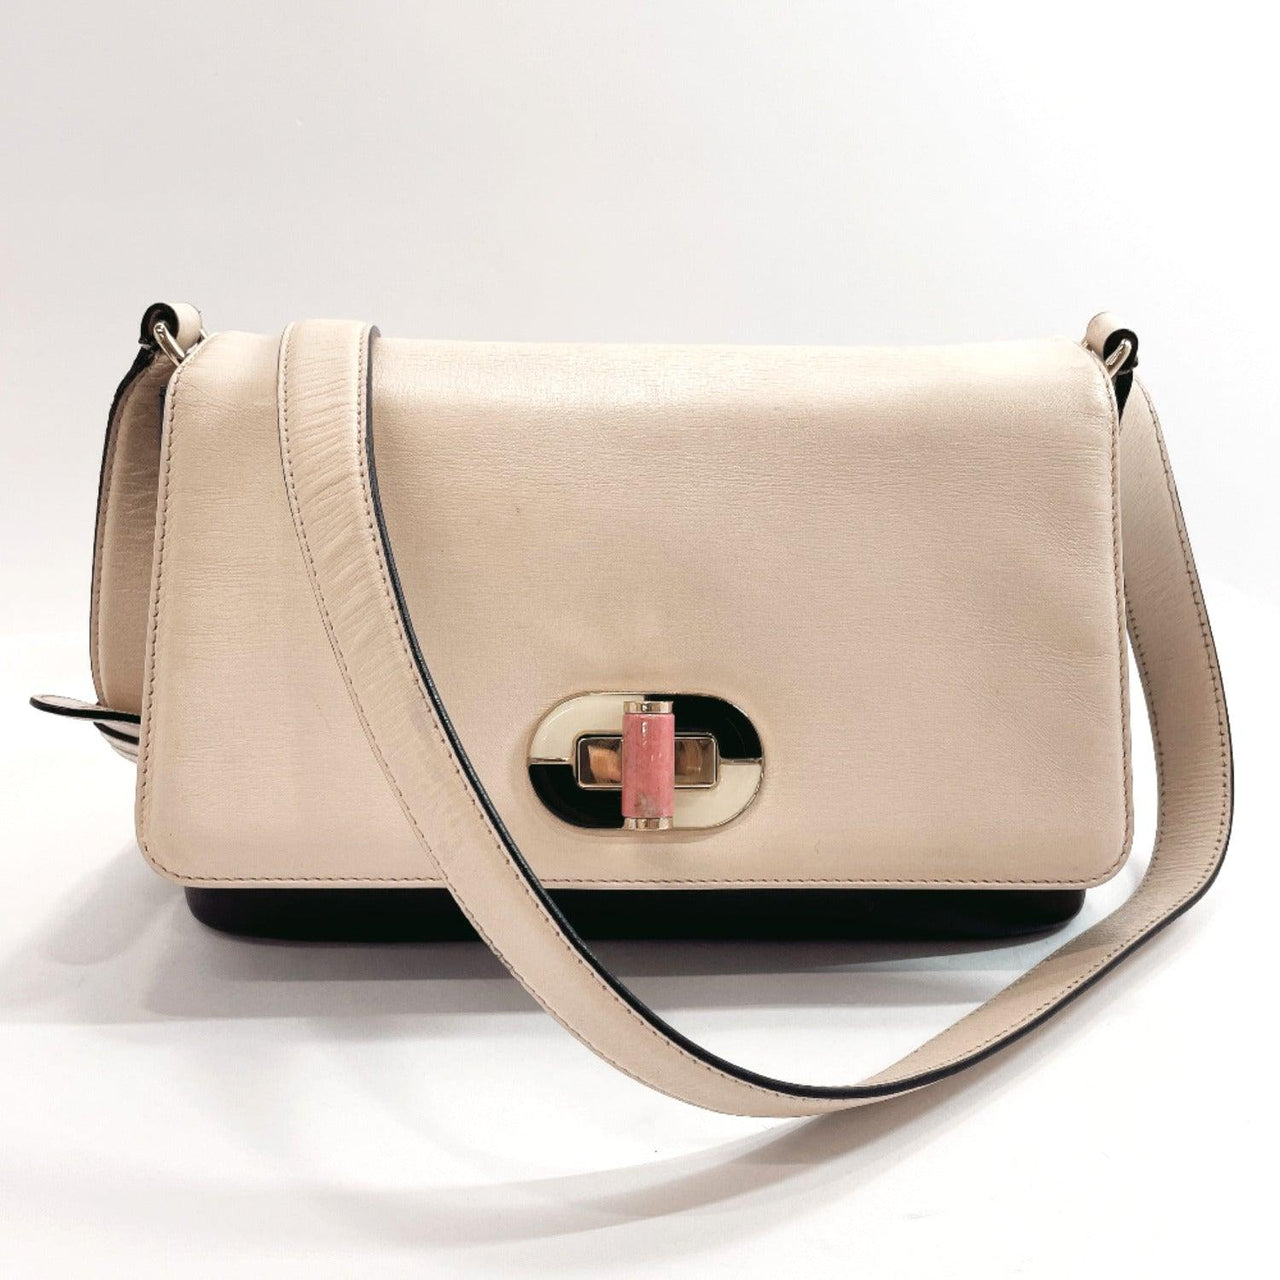 BVLGARI Shoulder Bag Isabella Rossellini leather beige Women Used